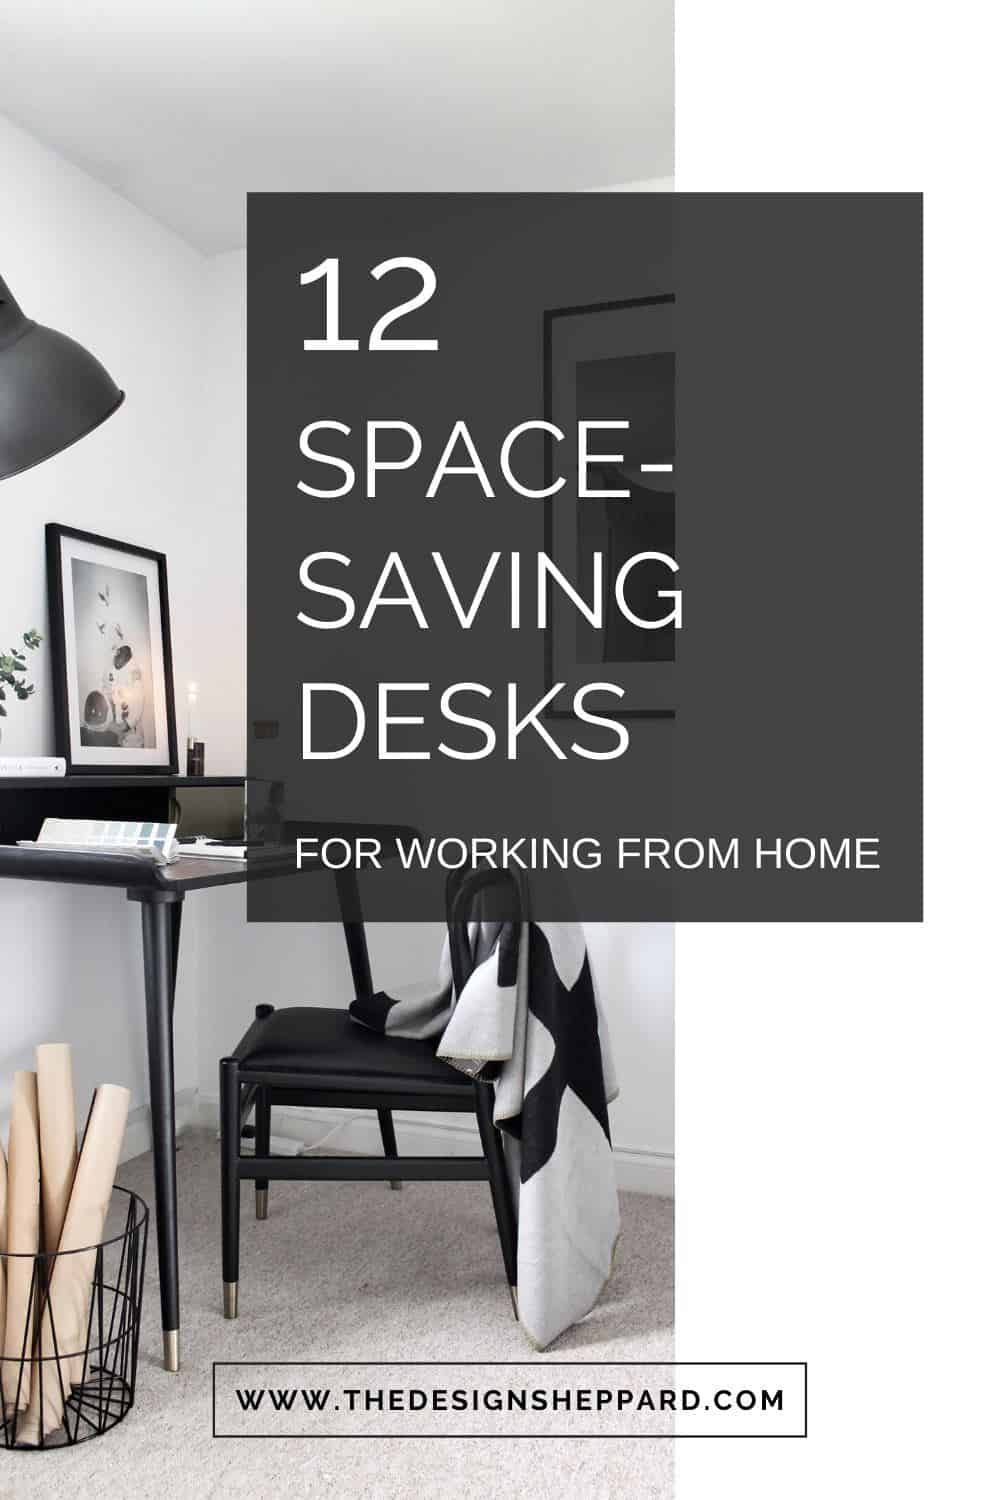 Space-saving desks